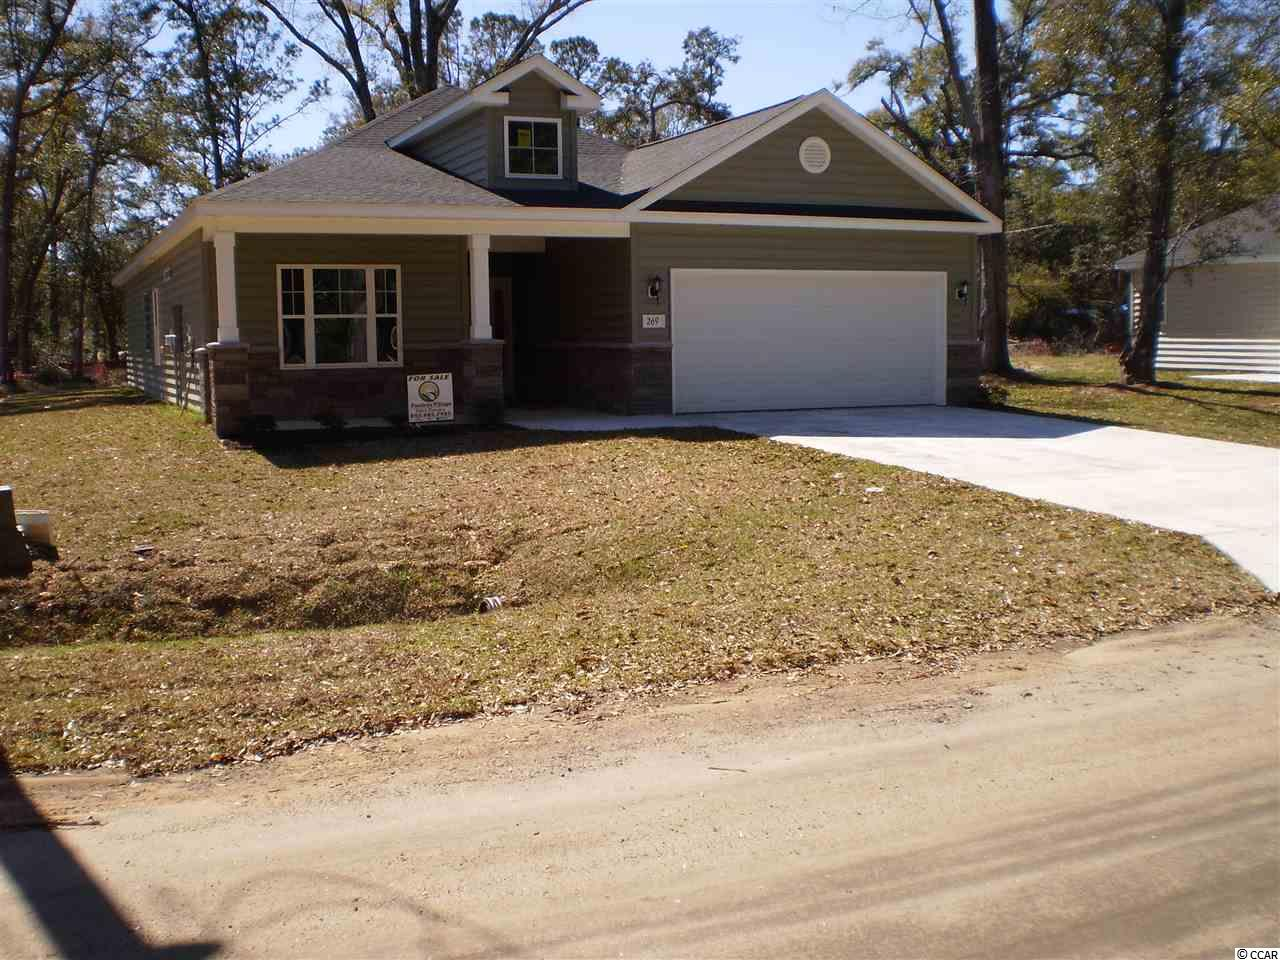 Brand new home in Pawley's Island. No HOA. Gourmet kitchen with granite counter tops, stainless steel appliances, upgraded cabinets with ceramic tile floors, hardwood flooring and carpet in the bedrooms. Ready to Move In!!!